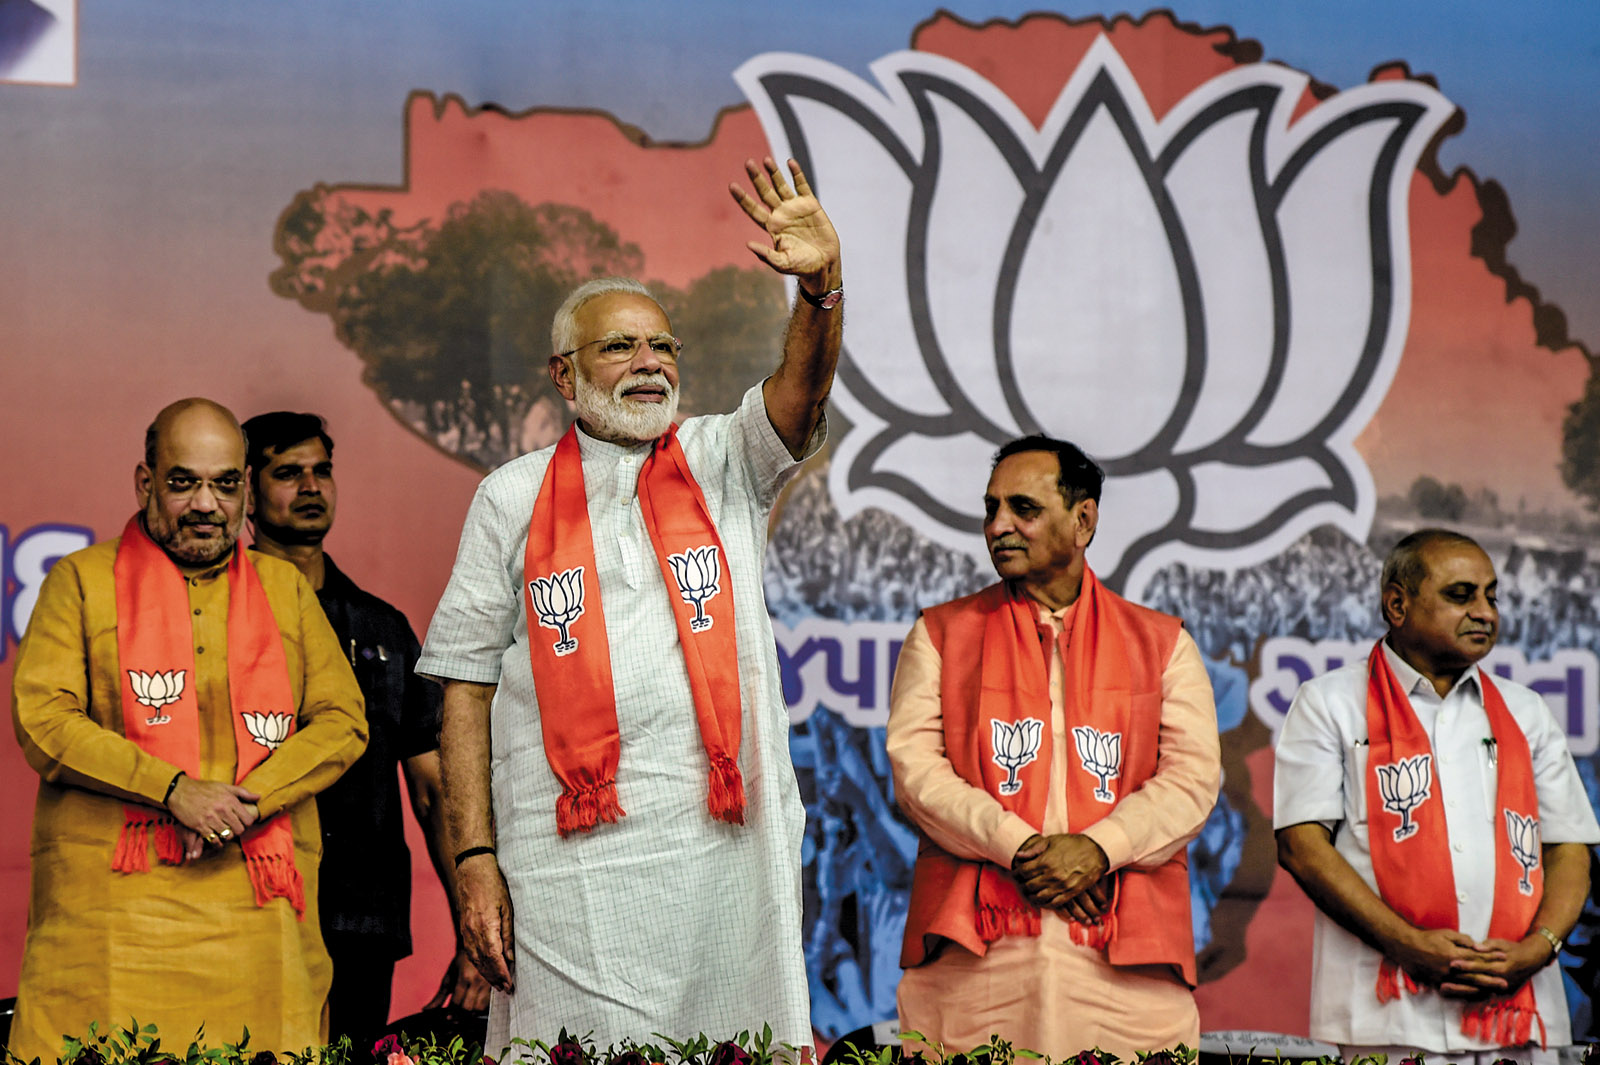 Narendra Modi at a rally after winning reelection as prime minister, 2019